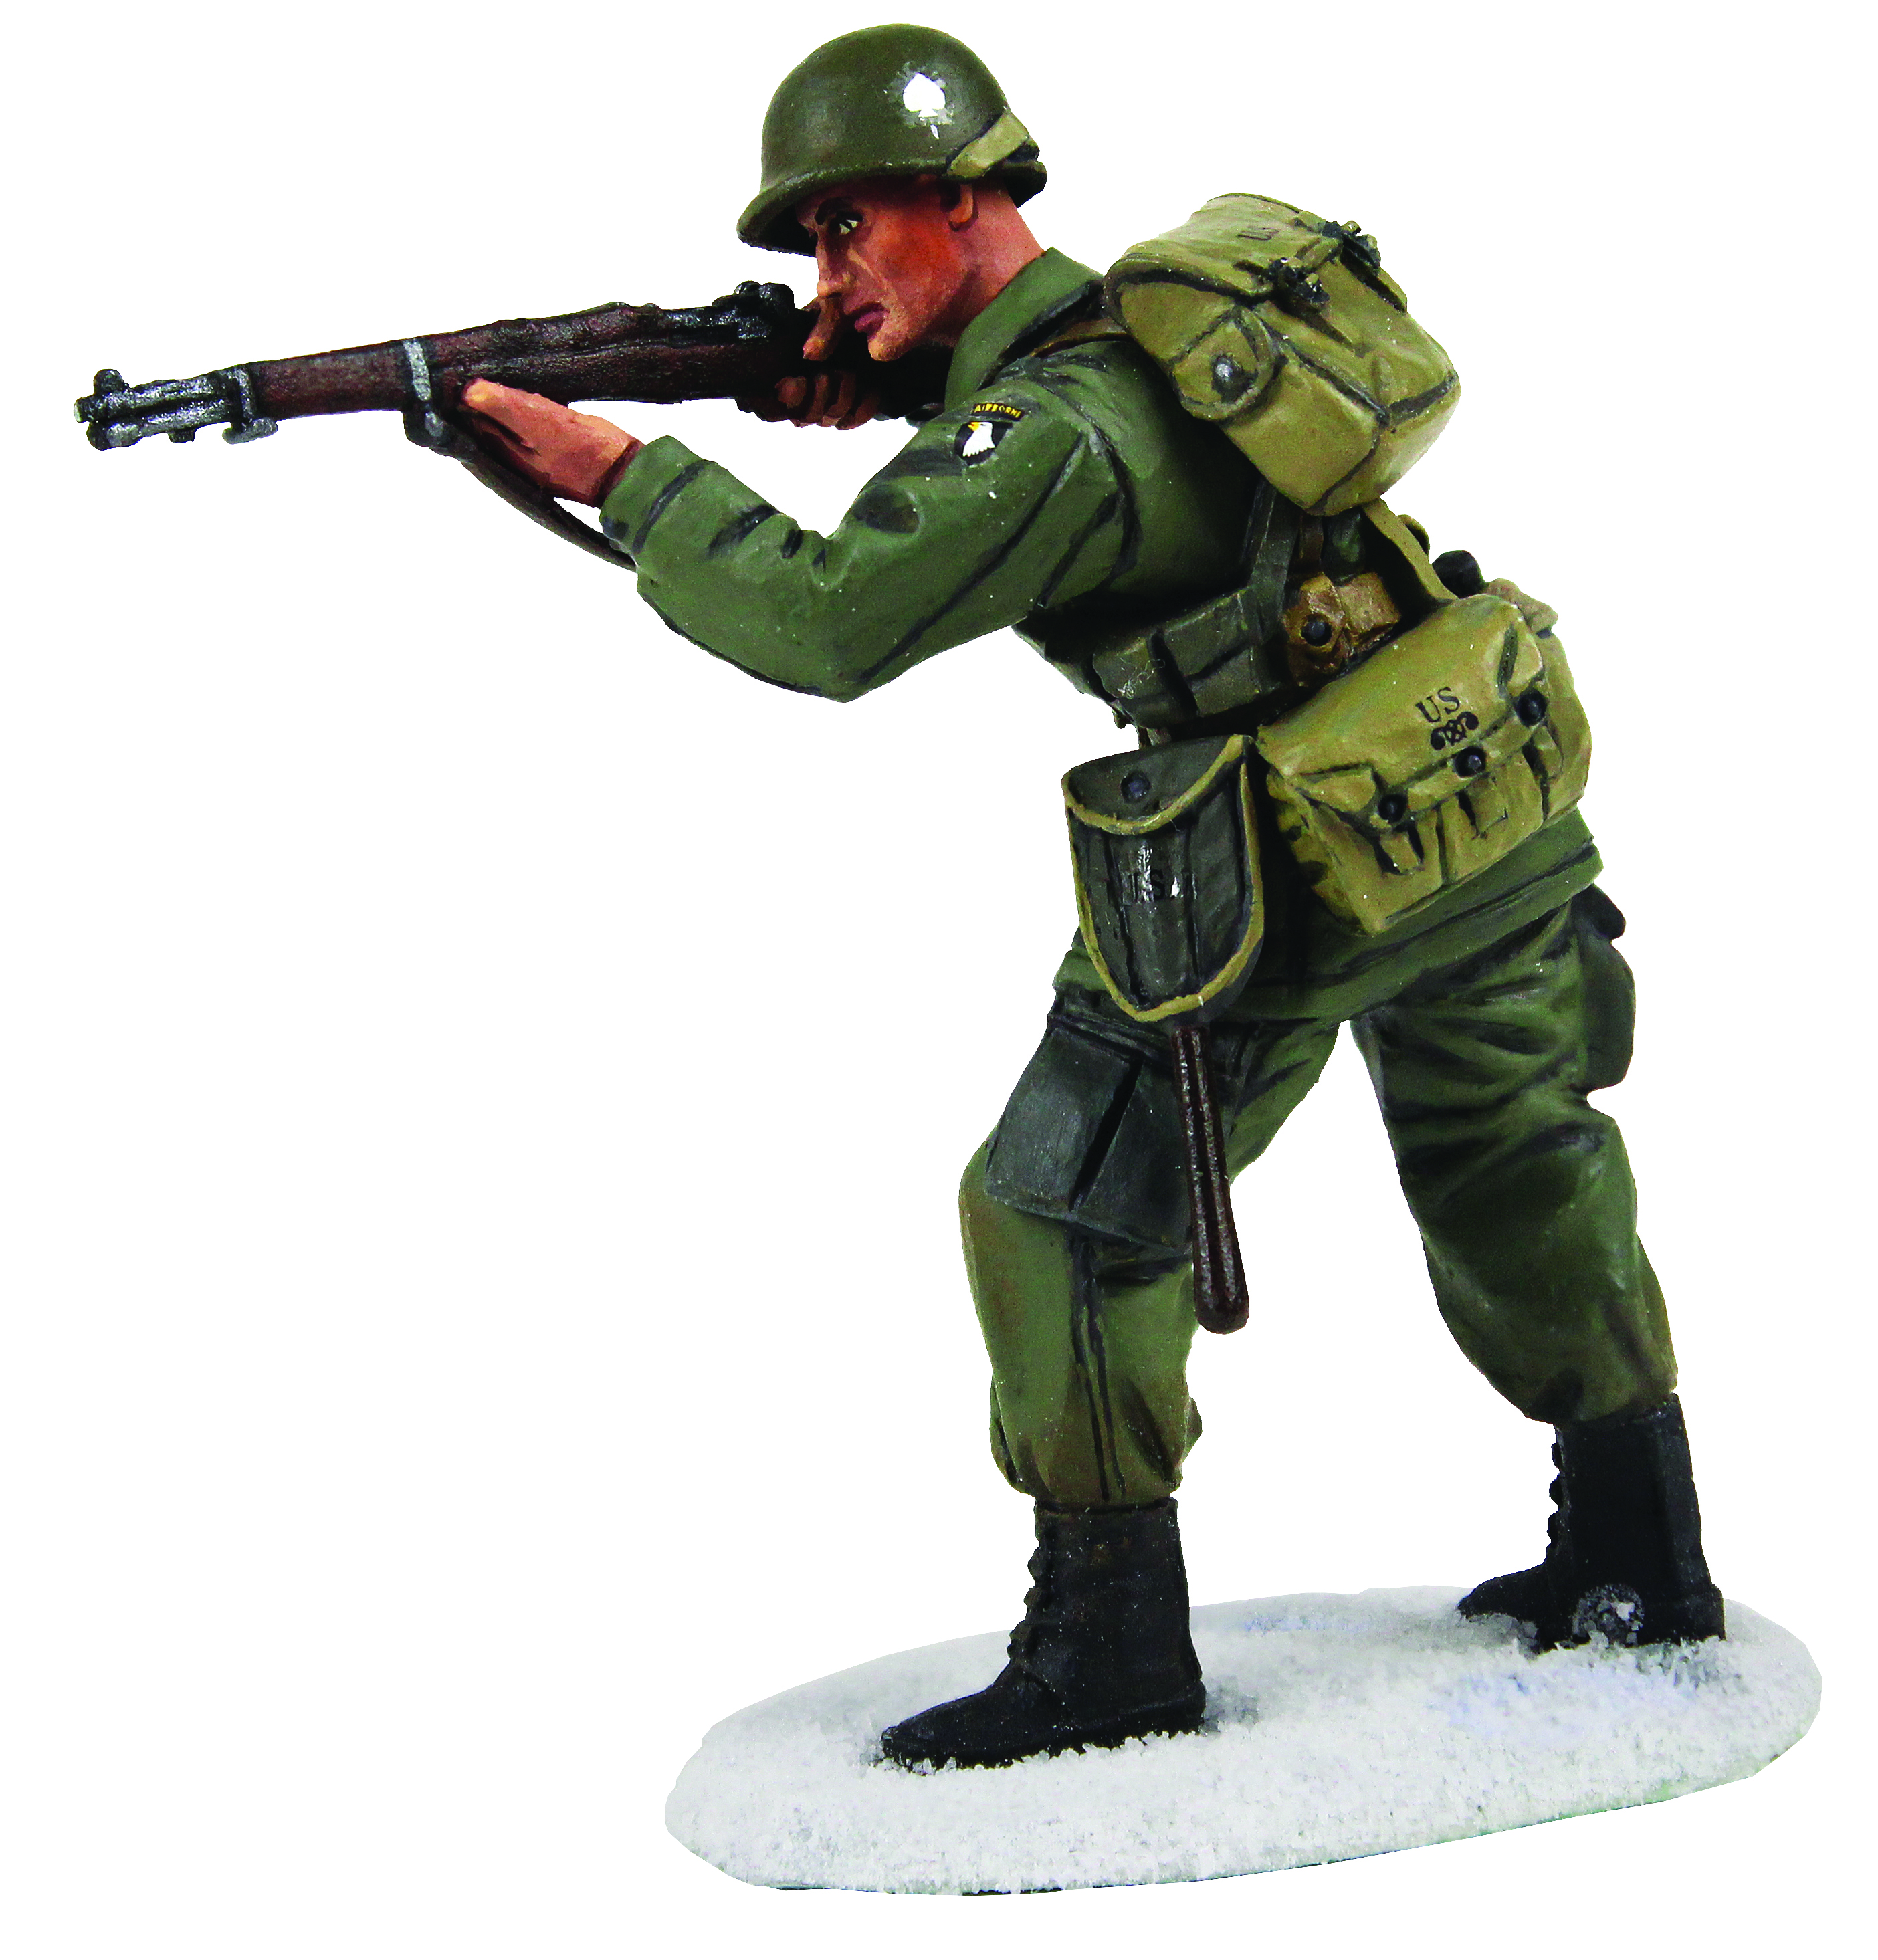 U.S 101st Airborne Infantry in M-43 Jacket Standing Firing M-1 Garand, Winter 1944-45 - 1 Piece Set in Clamshell Pack